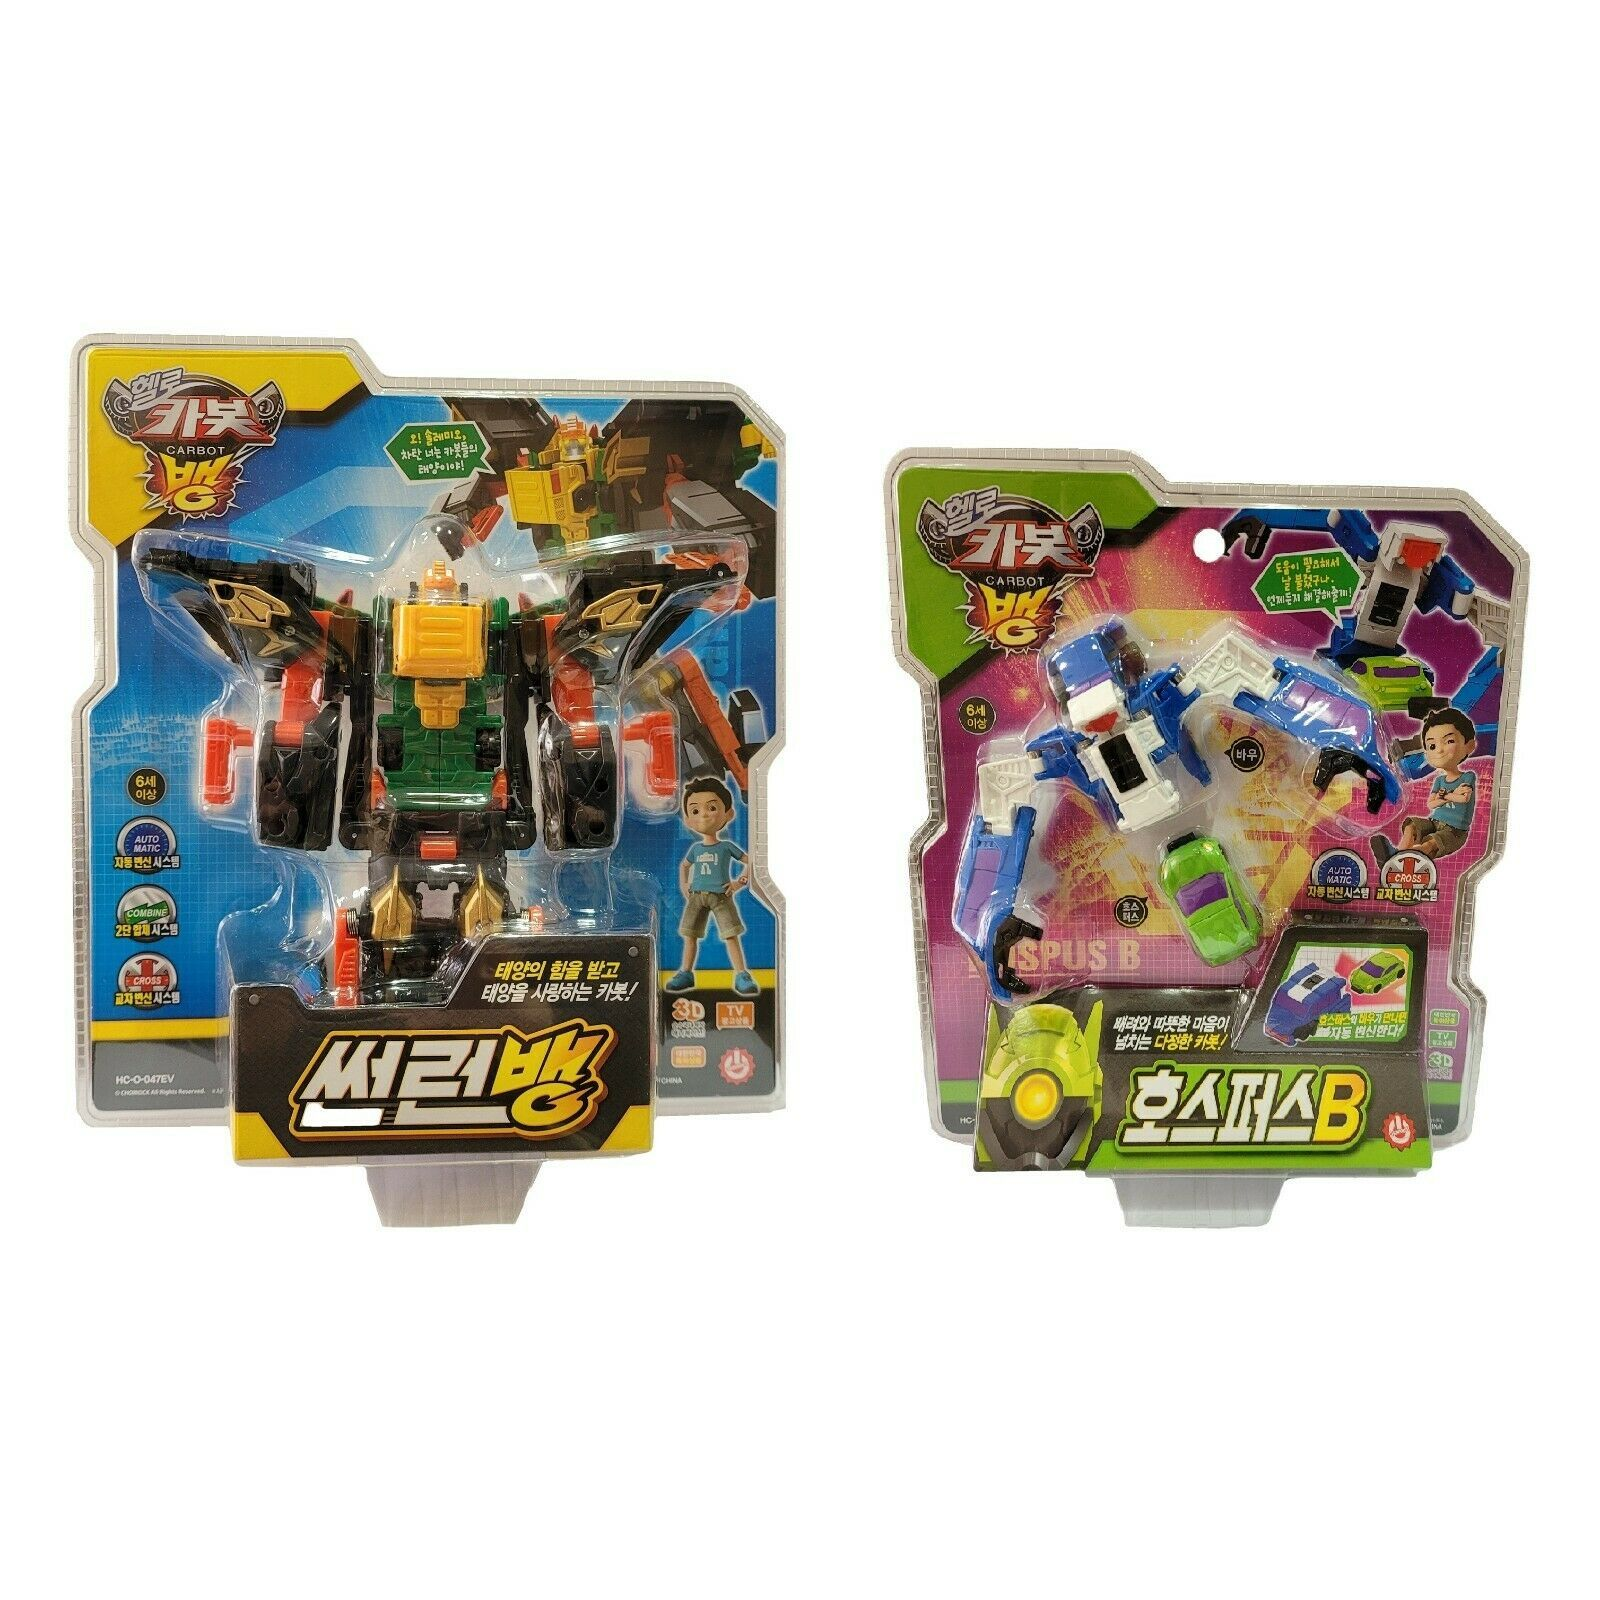 Hello Carbot Sun Run Bang + Hospus B Set Korean Transformation Action Figure Toy